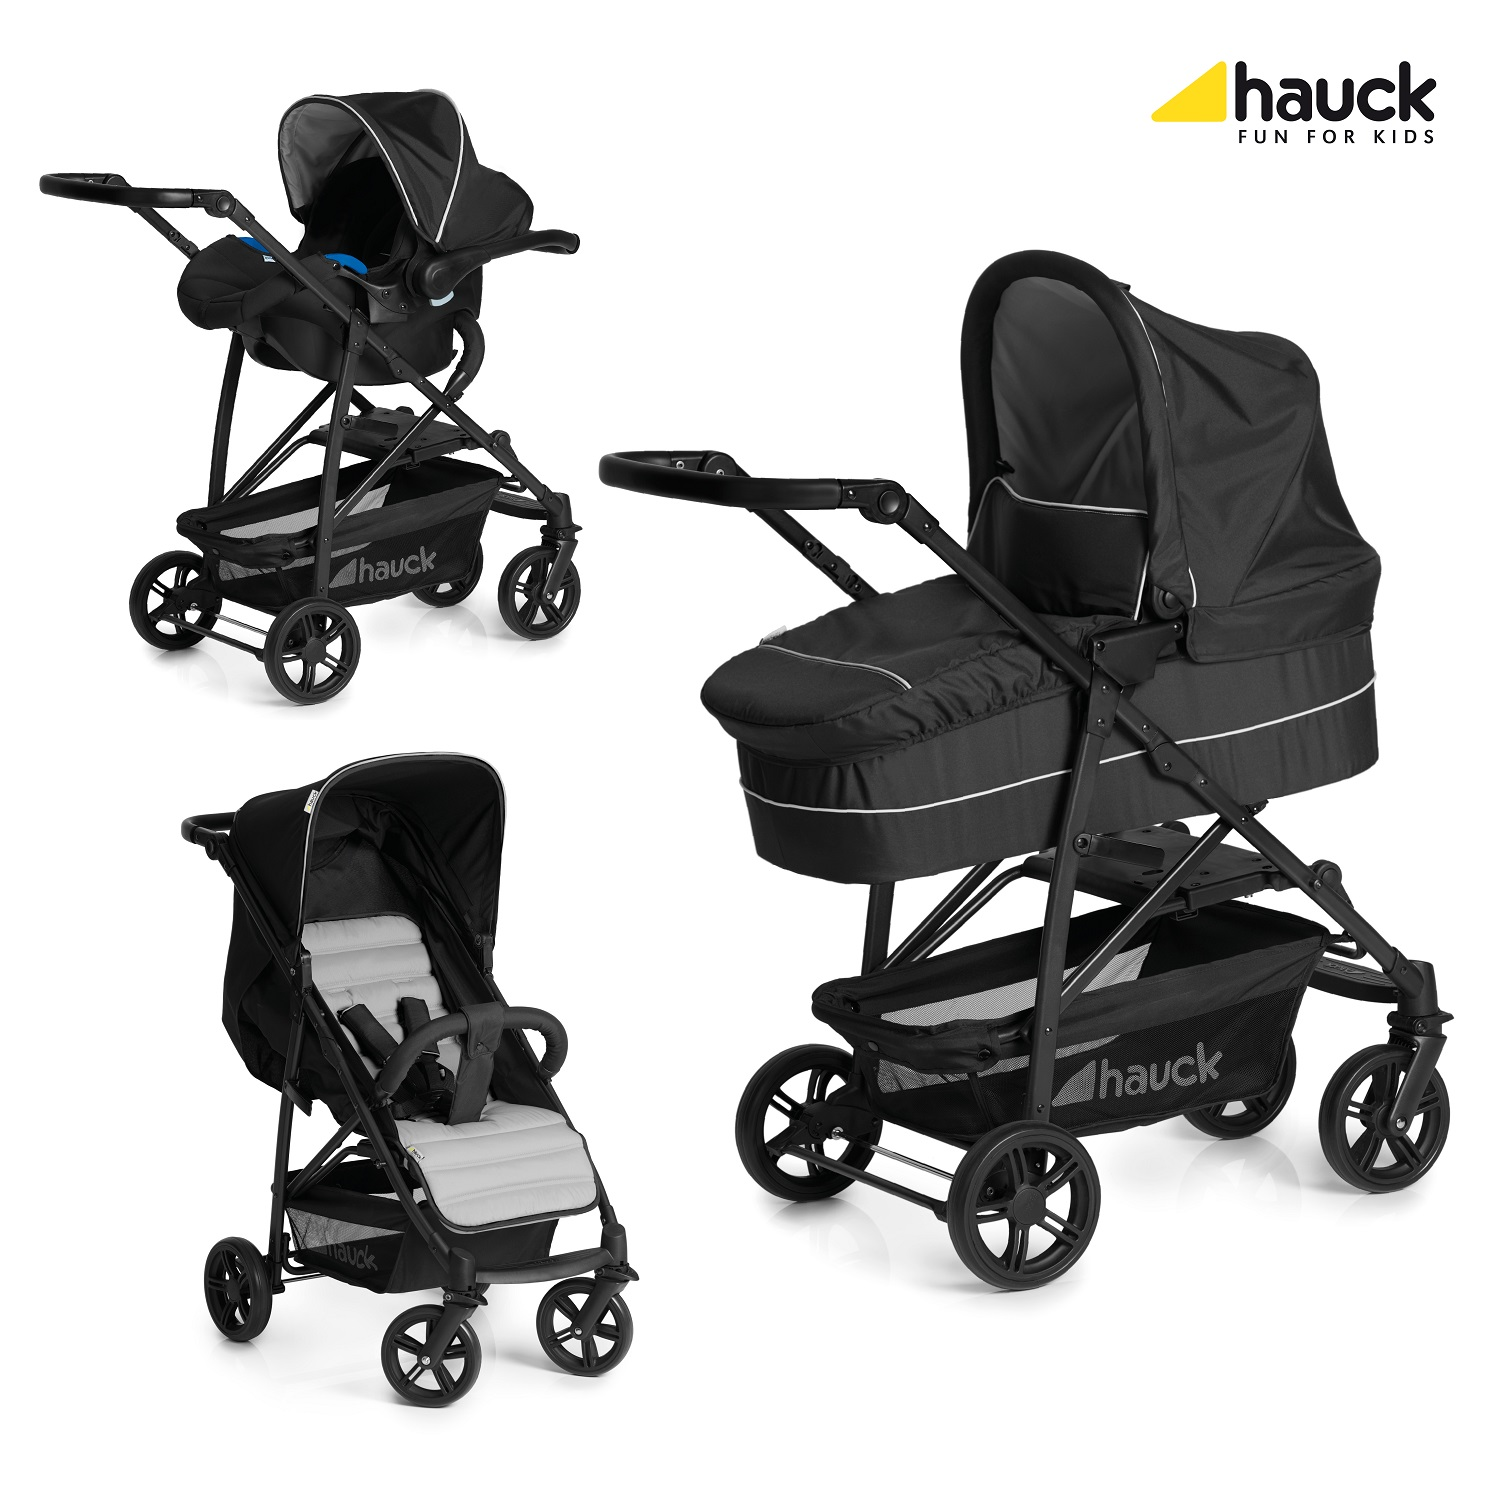 Caviar//Silver Hauck Rapid 4 Stroller One Hand Folding Baby Pushchair ON SALE!